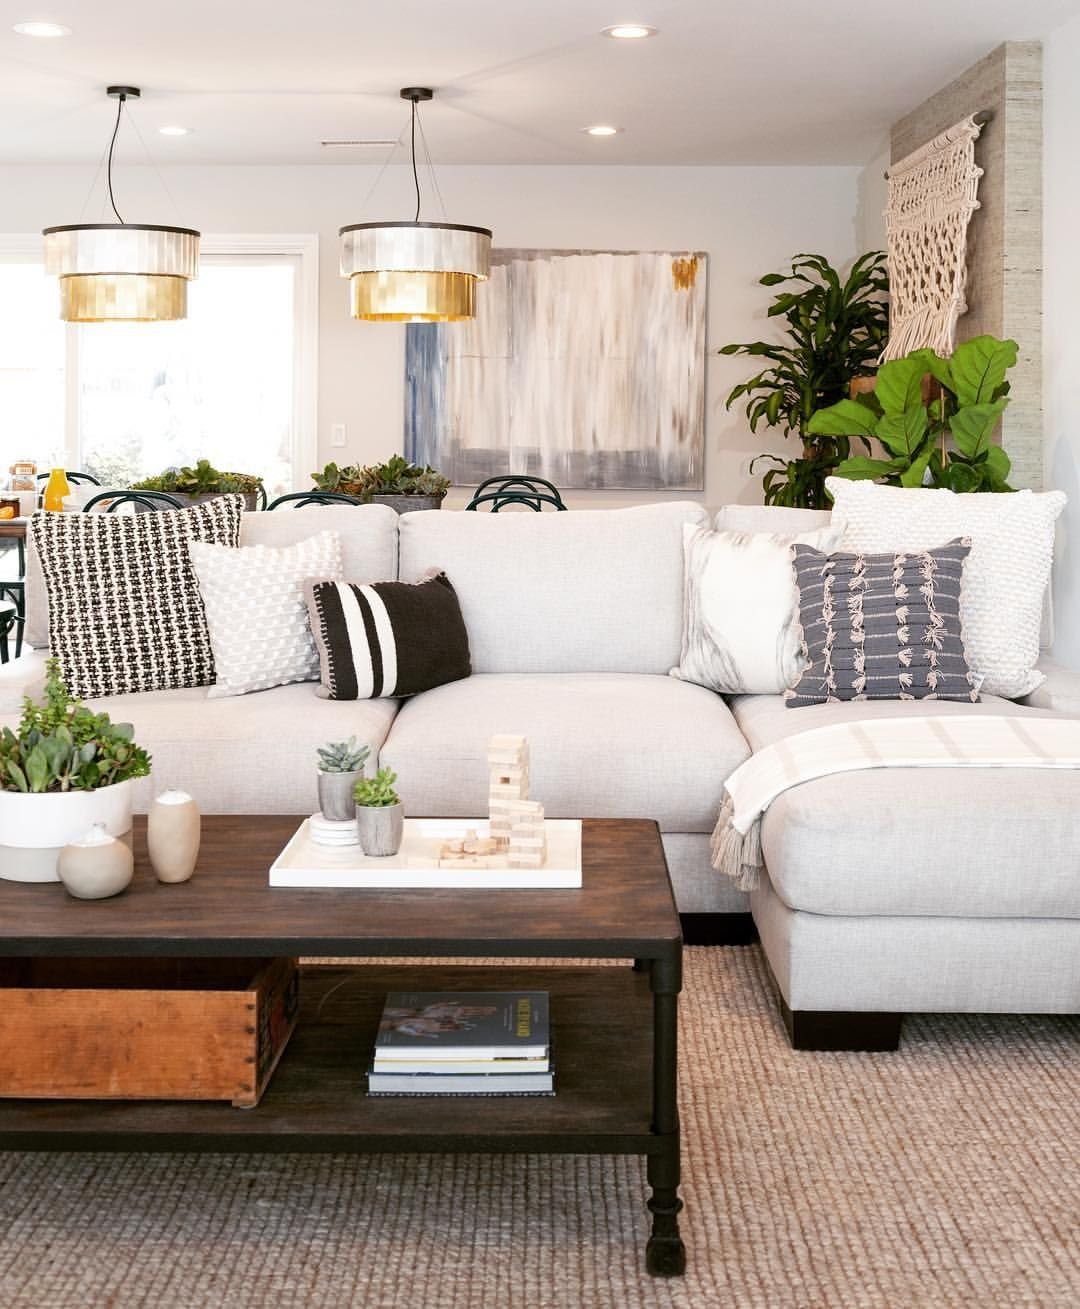 Pin By Marisa Munn On House A Home In 2019